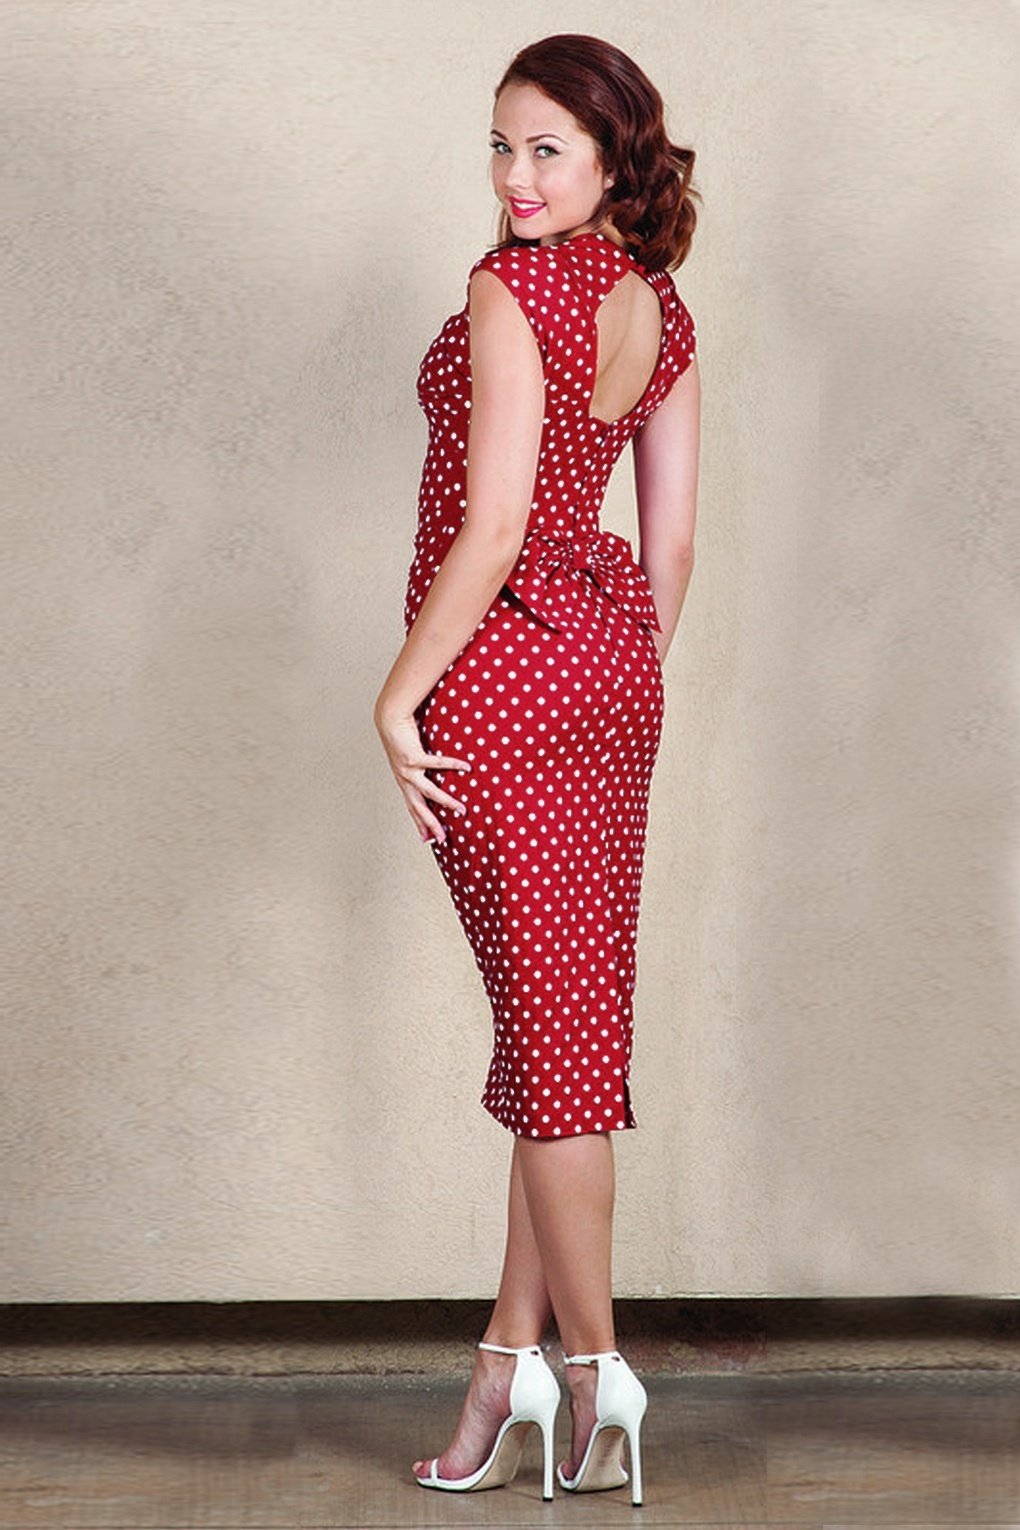 Rockabilly Dresses | Rockabilly Clothing | Viva Las Vegas Love Polkadot print Bow Pencil Dress Red £197.50 AT vintagedancer.com